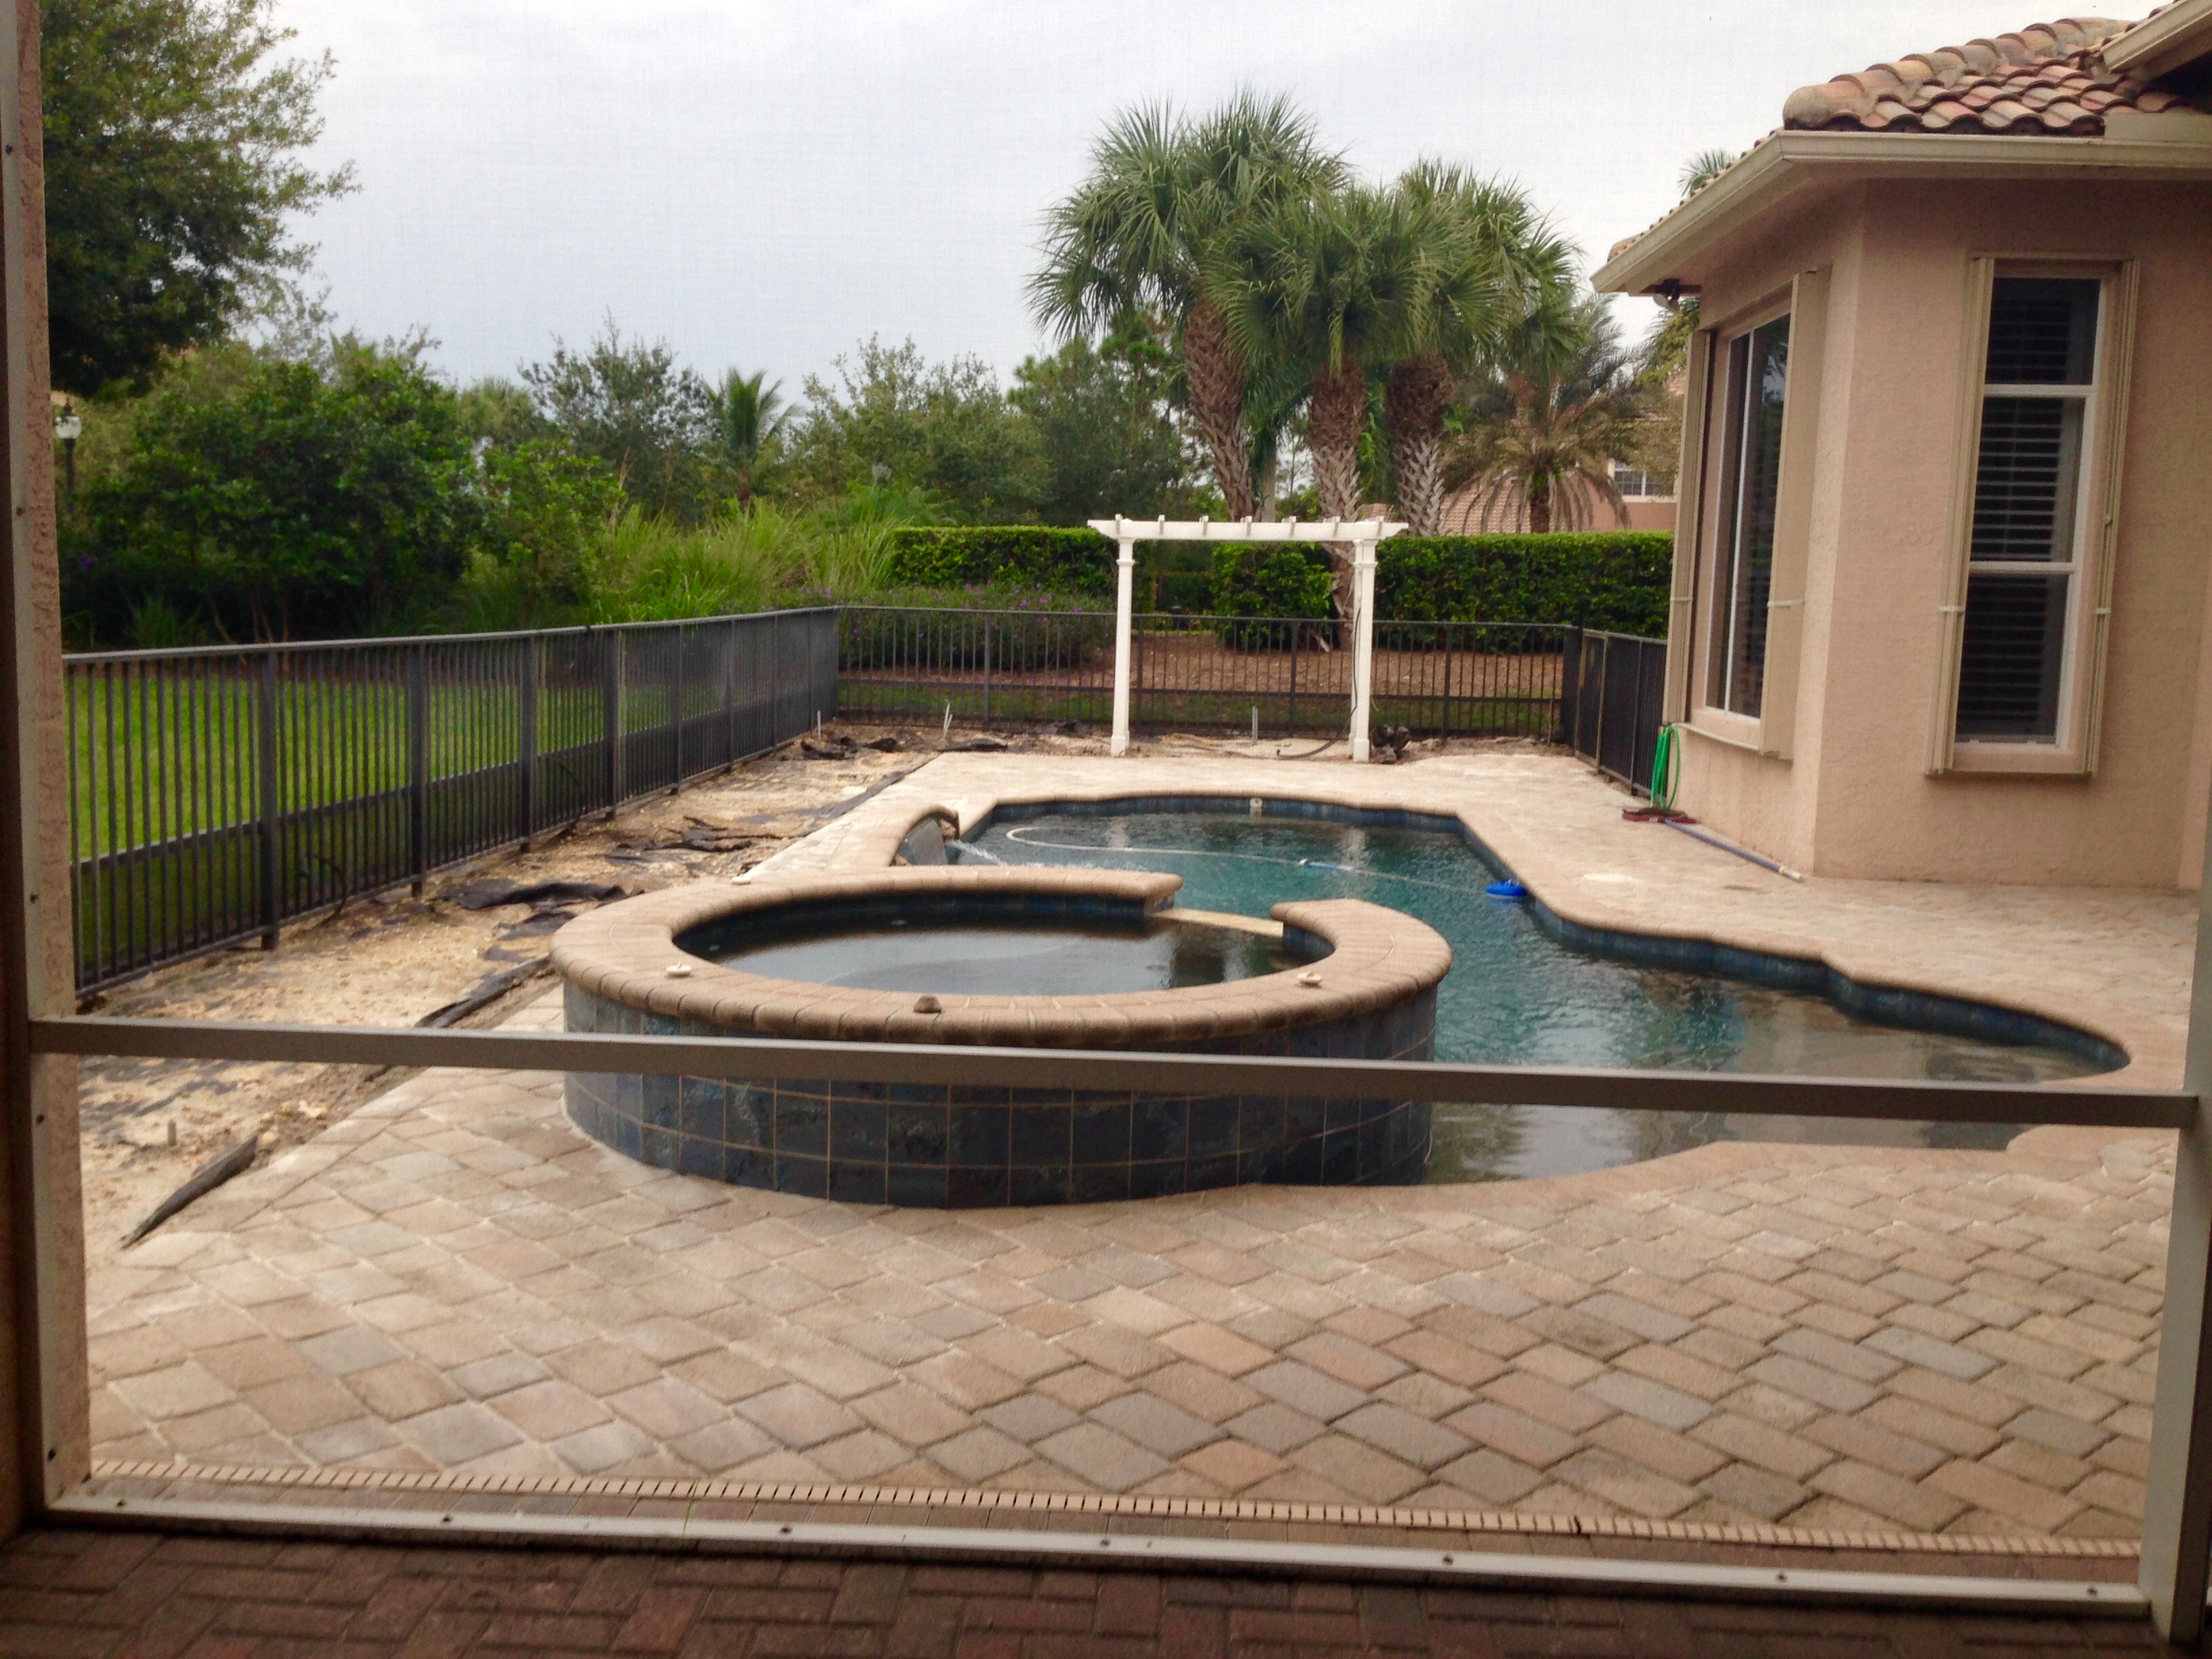 Tropical landscaping and paver deck for small pool area for Pool redesign